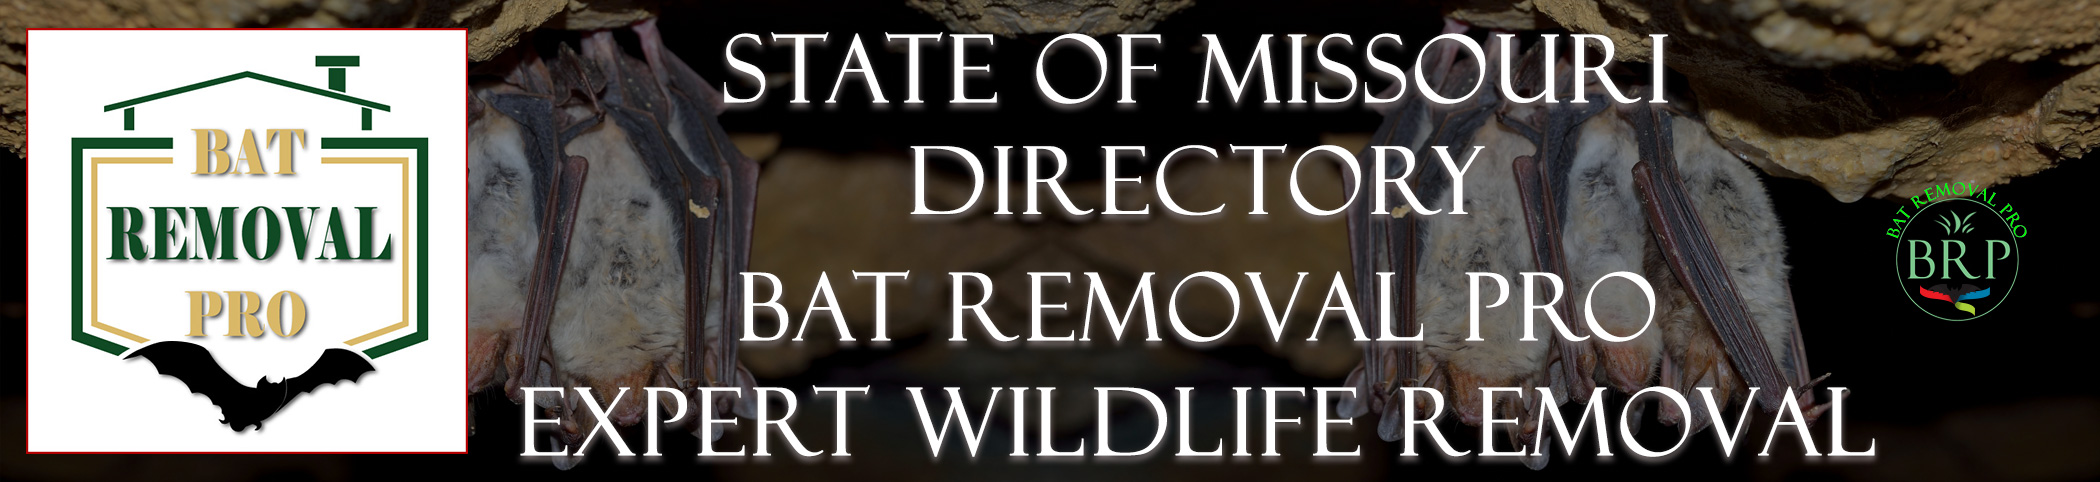 missouri-bat-removal-at-bat-removal-pro-header-image